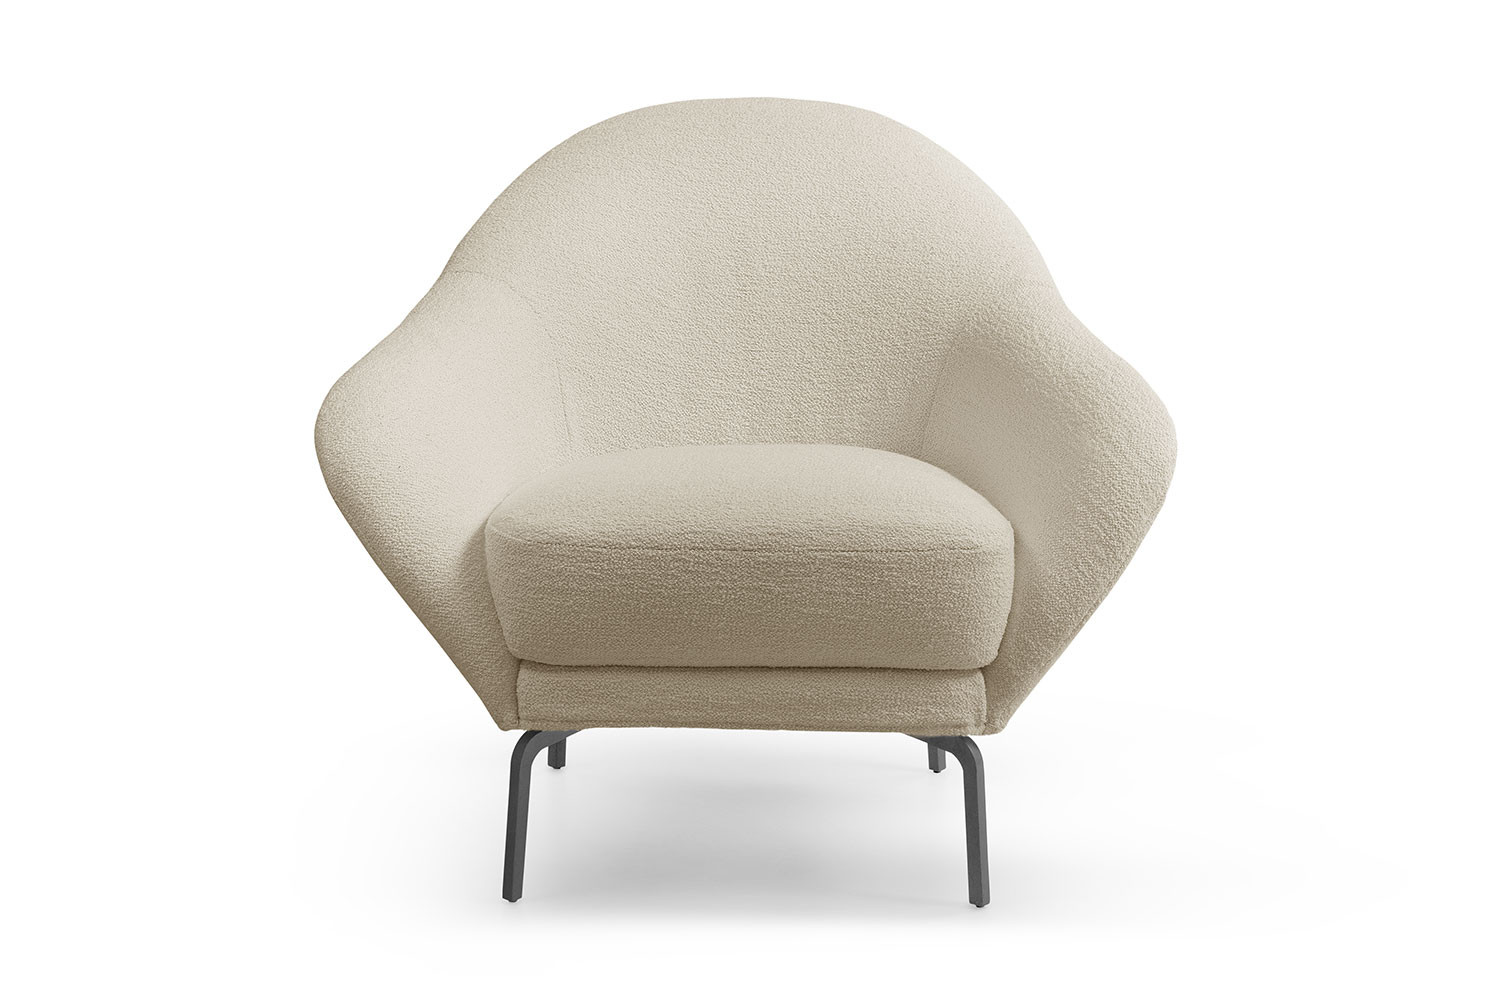 Oyster-style shell chair with high metal legs